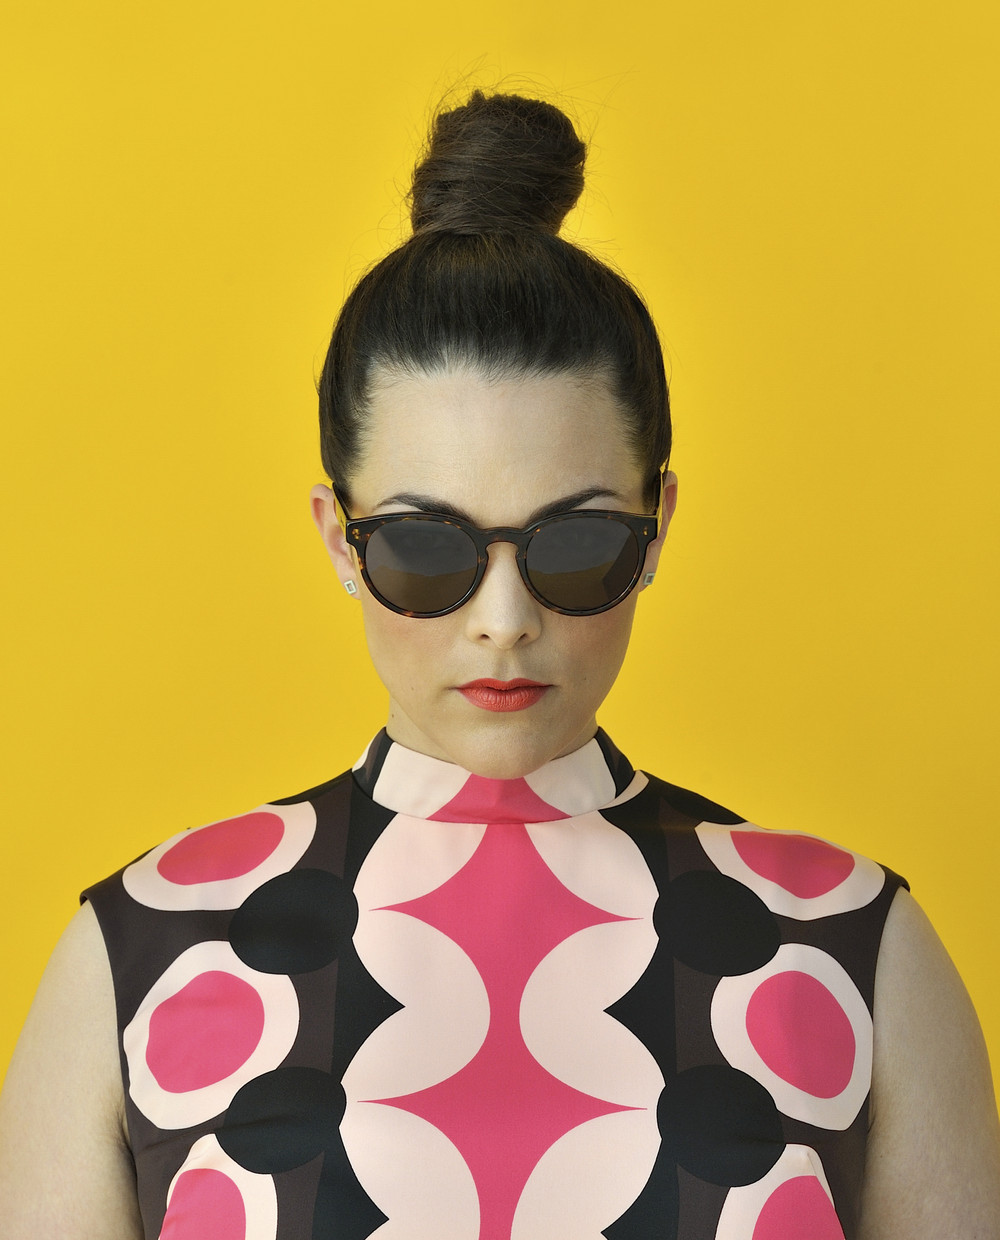 Caro Emerald tickets and 2017 tour dates